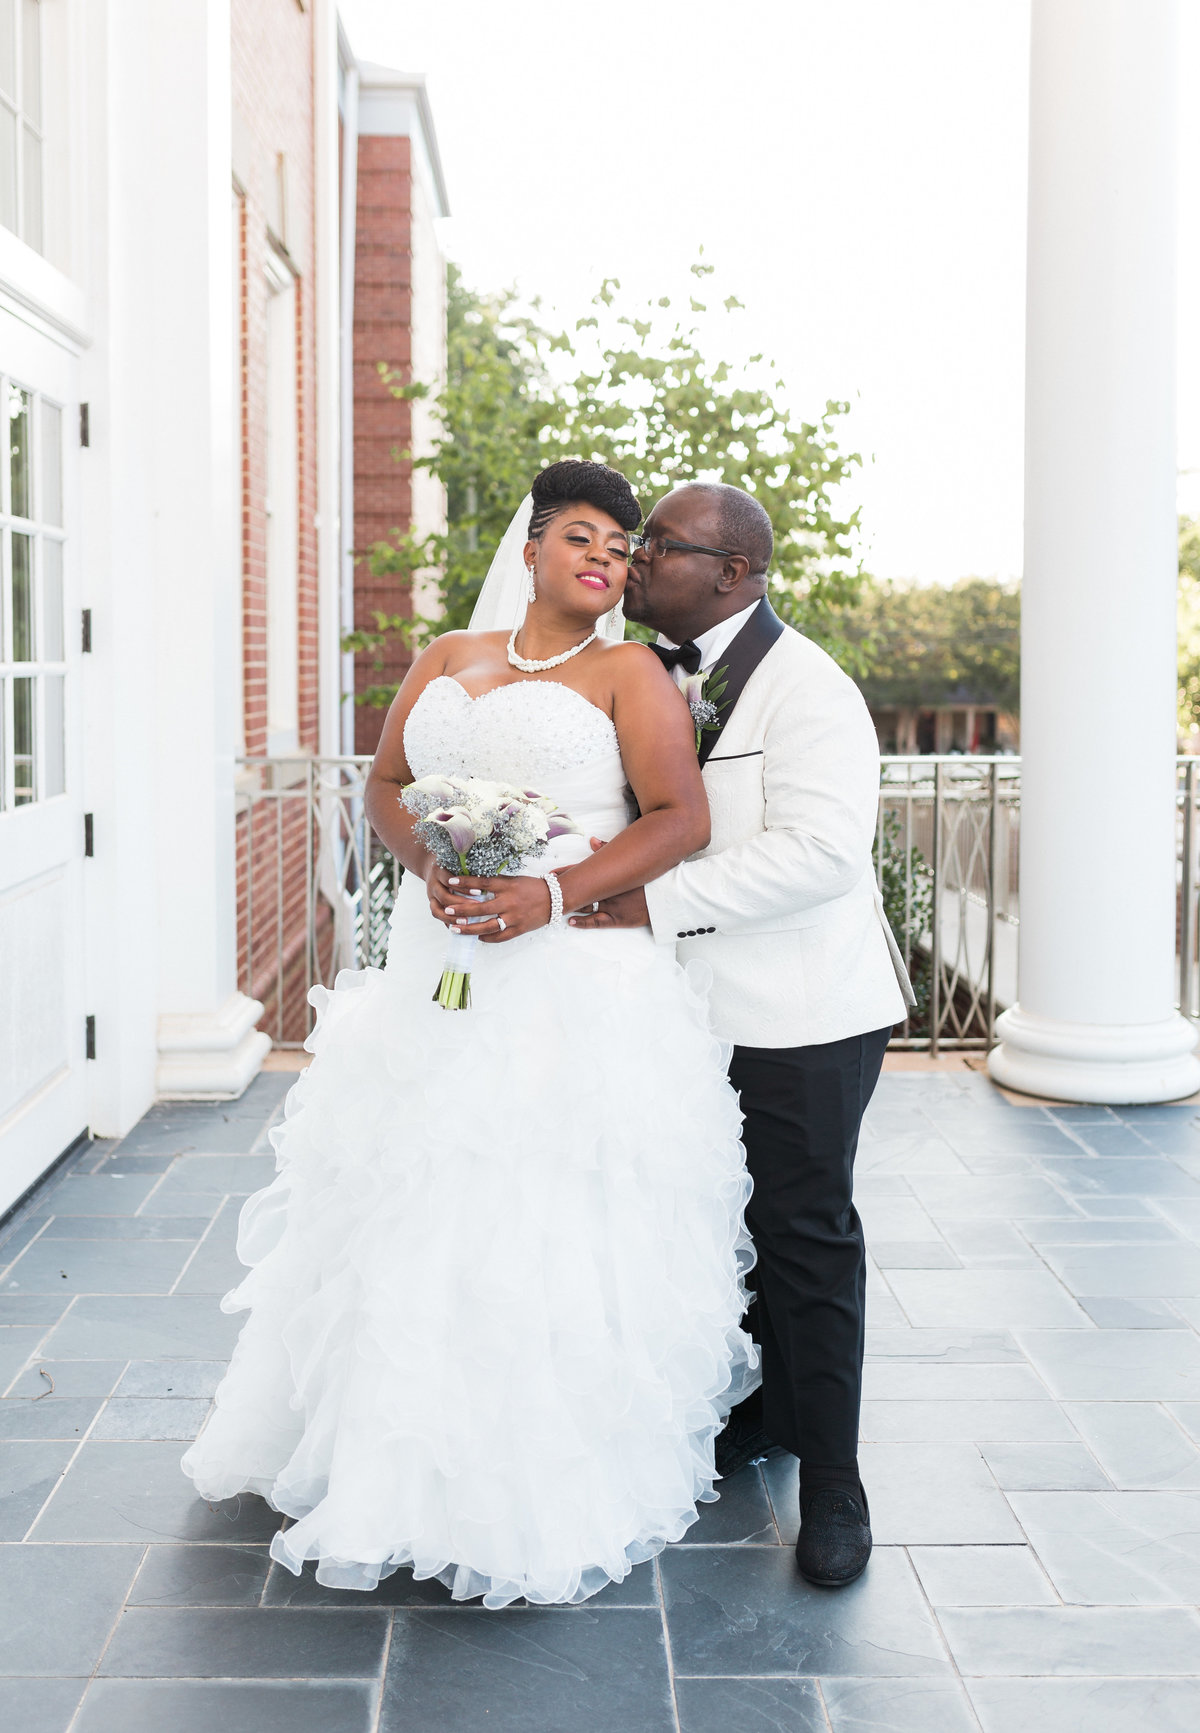 Black wedding photographer in Cary NC